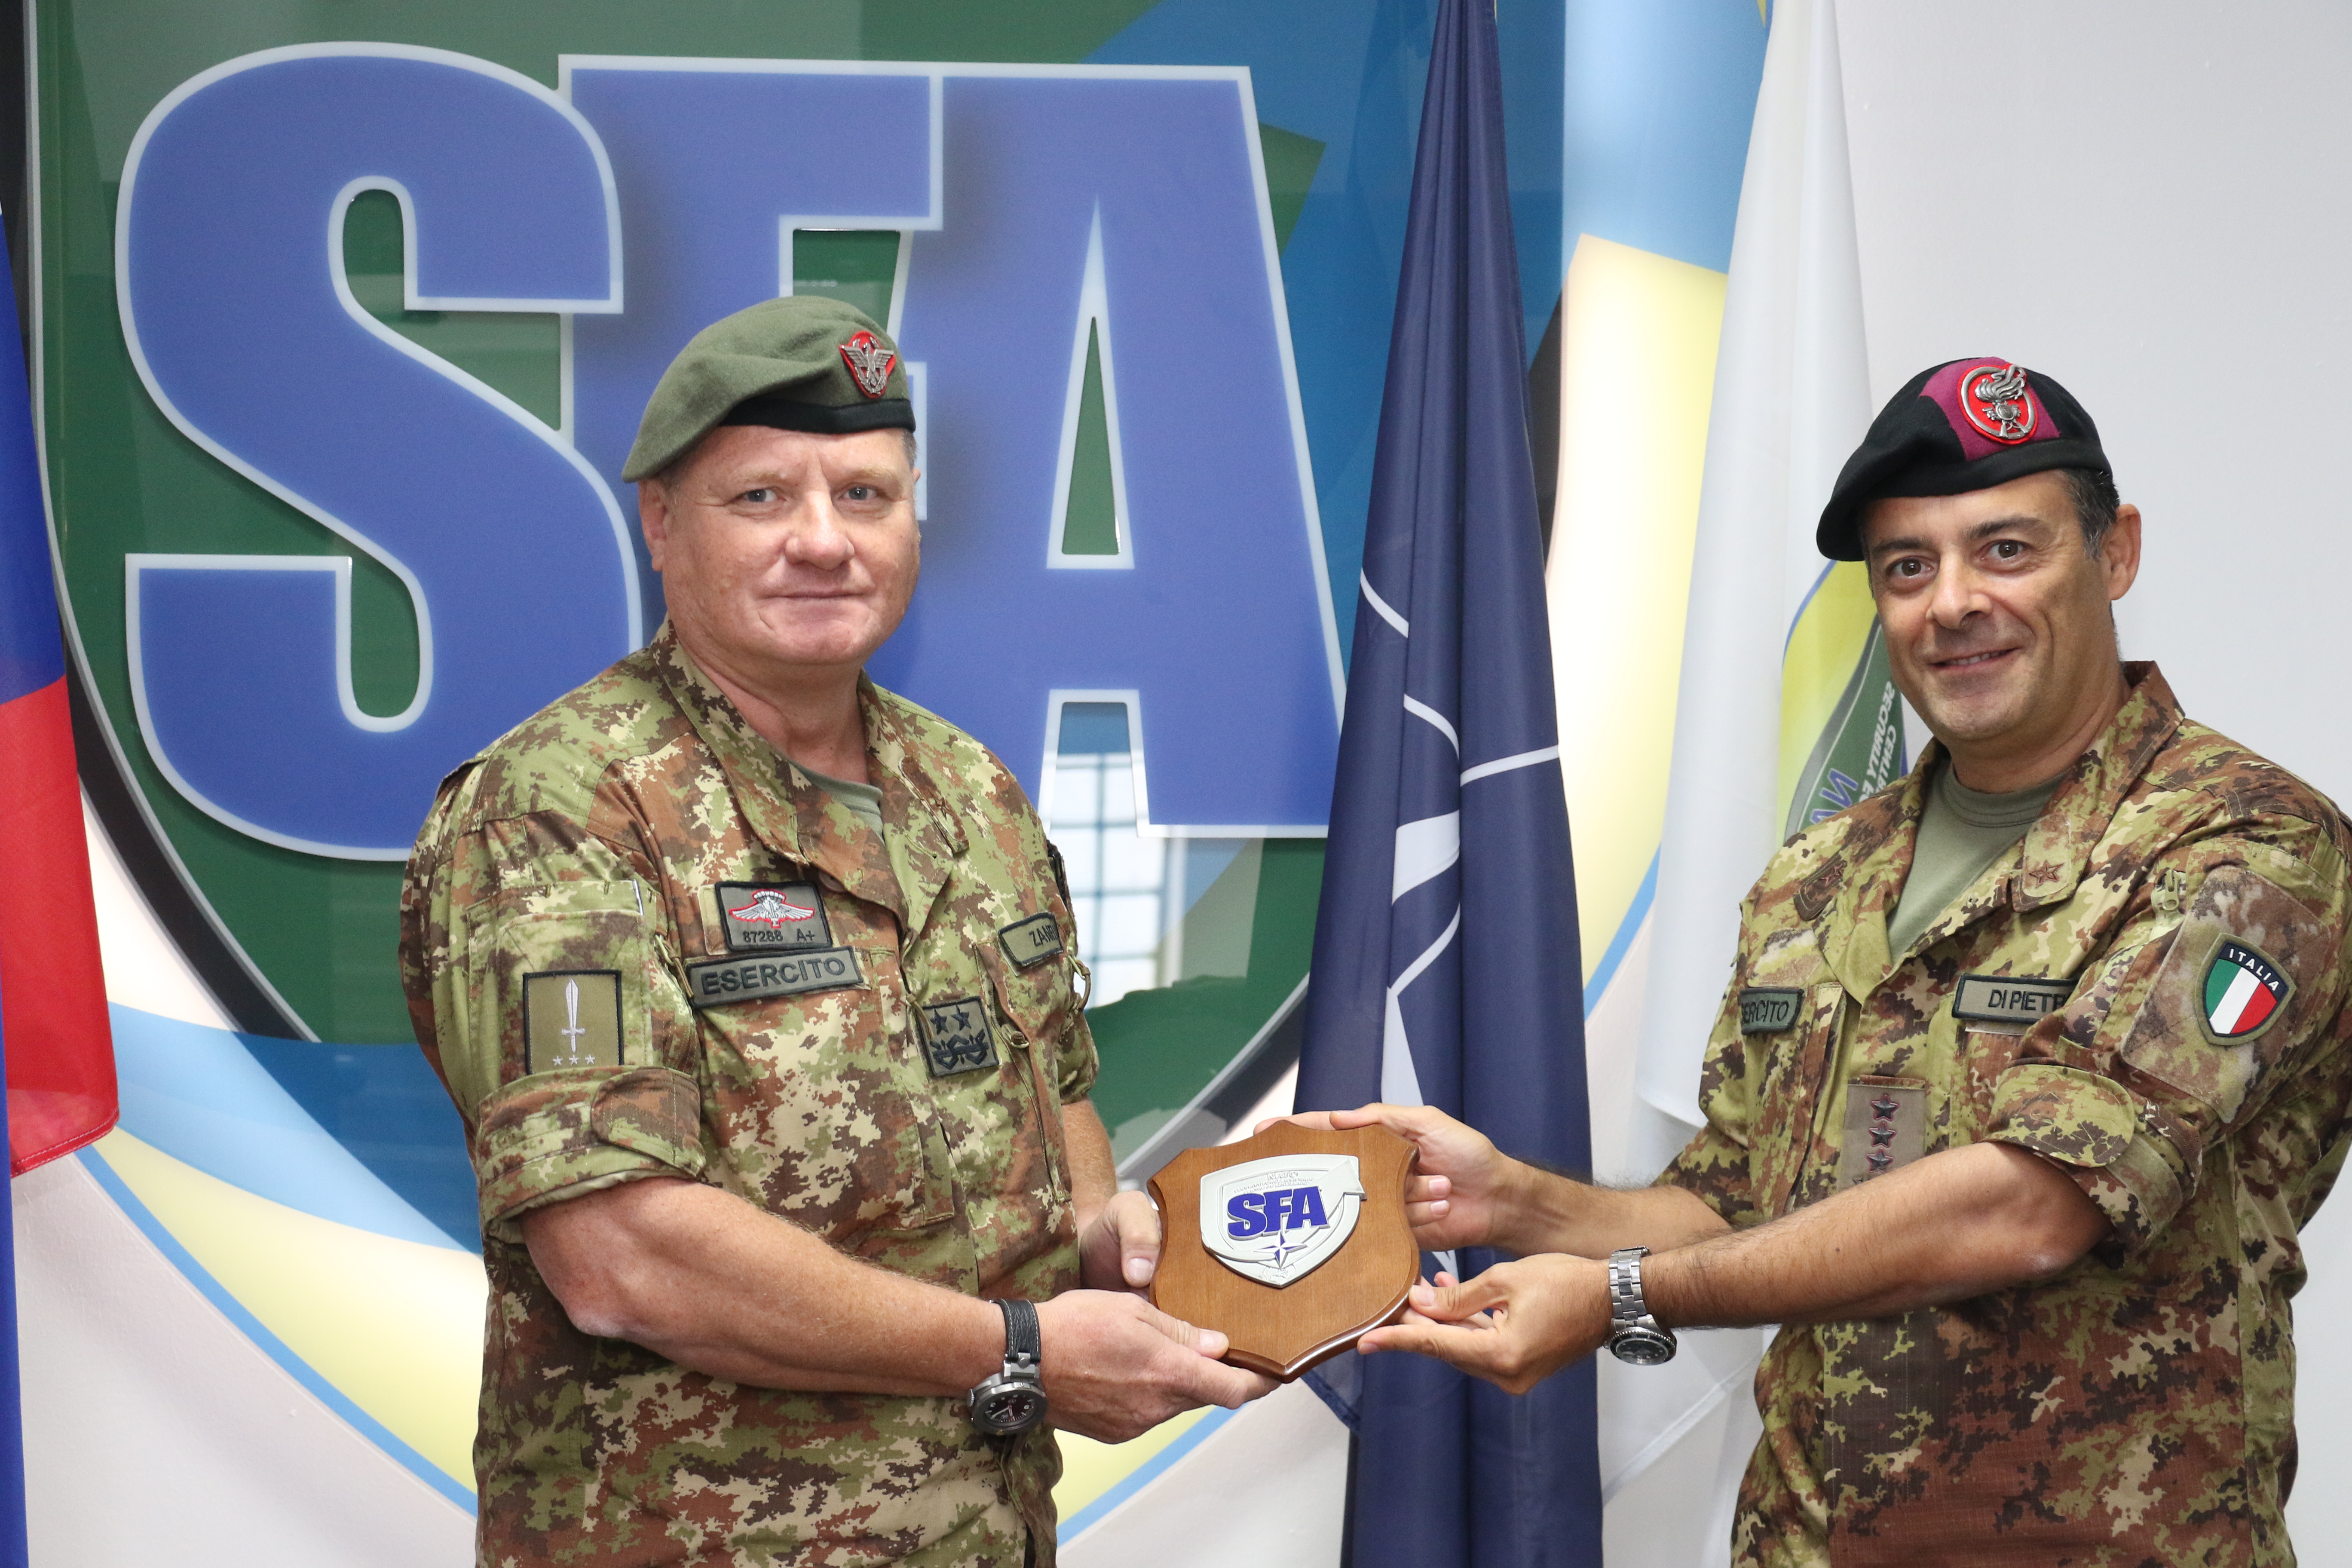 Major General Nicola ZANELLI, the future DCOM RSM, visits the NATO SFA COE